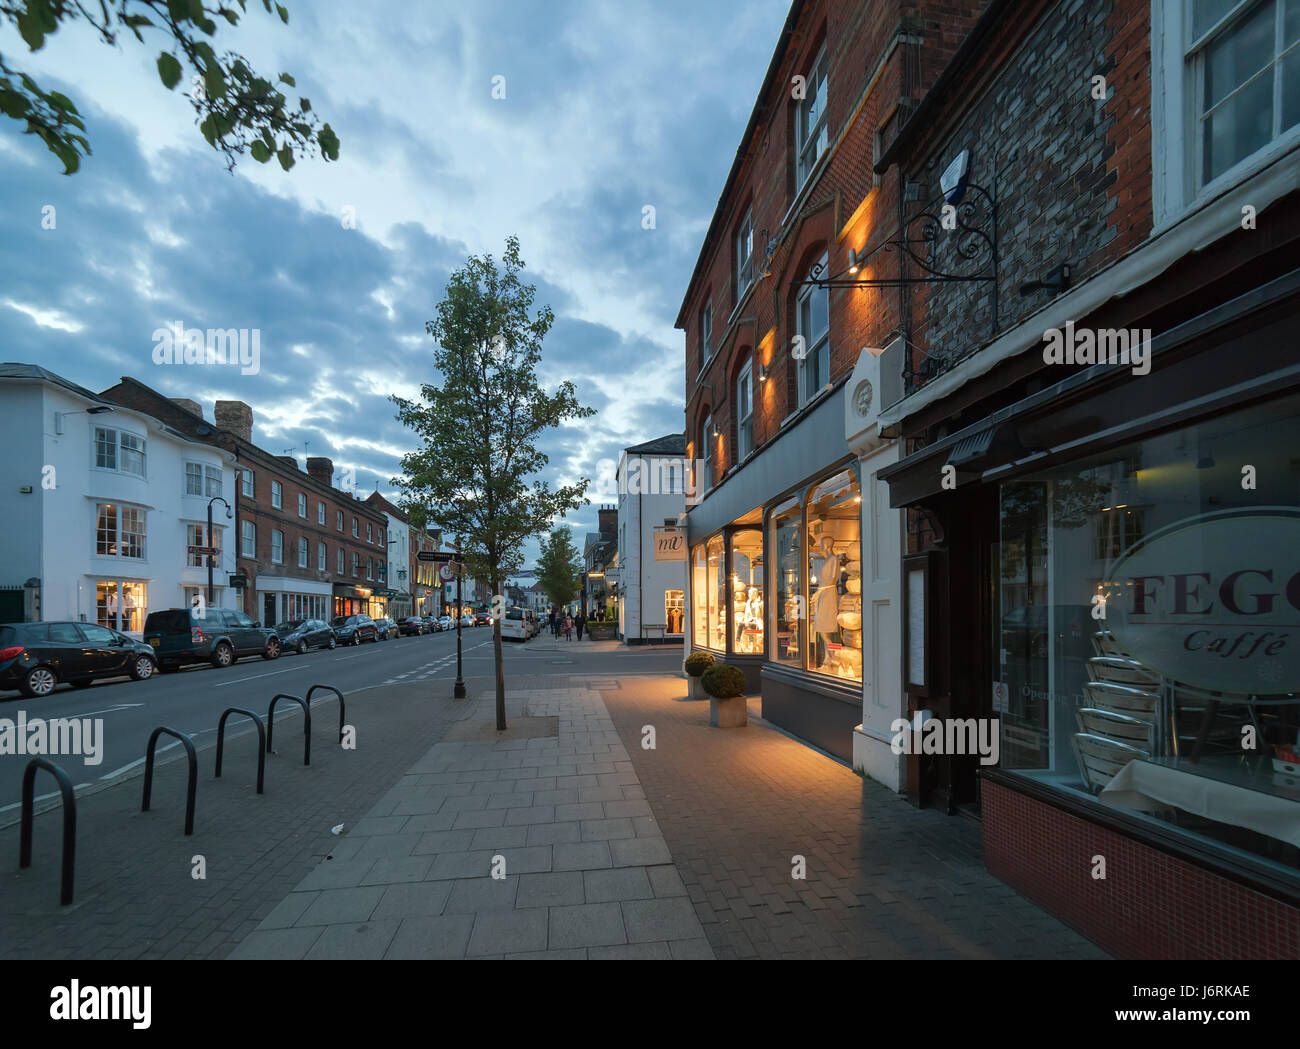 Marlow in Buckinghamshire, UK Stock Photo